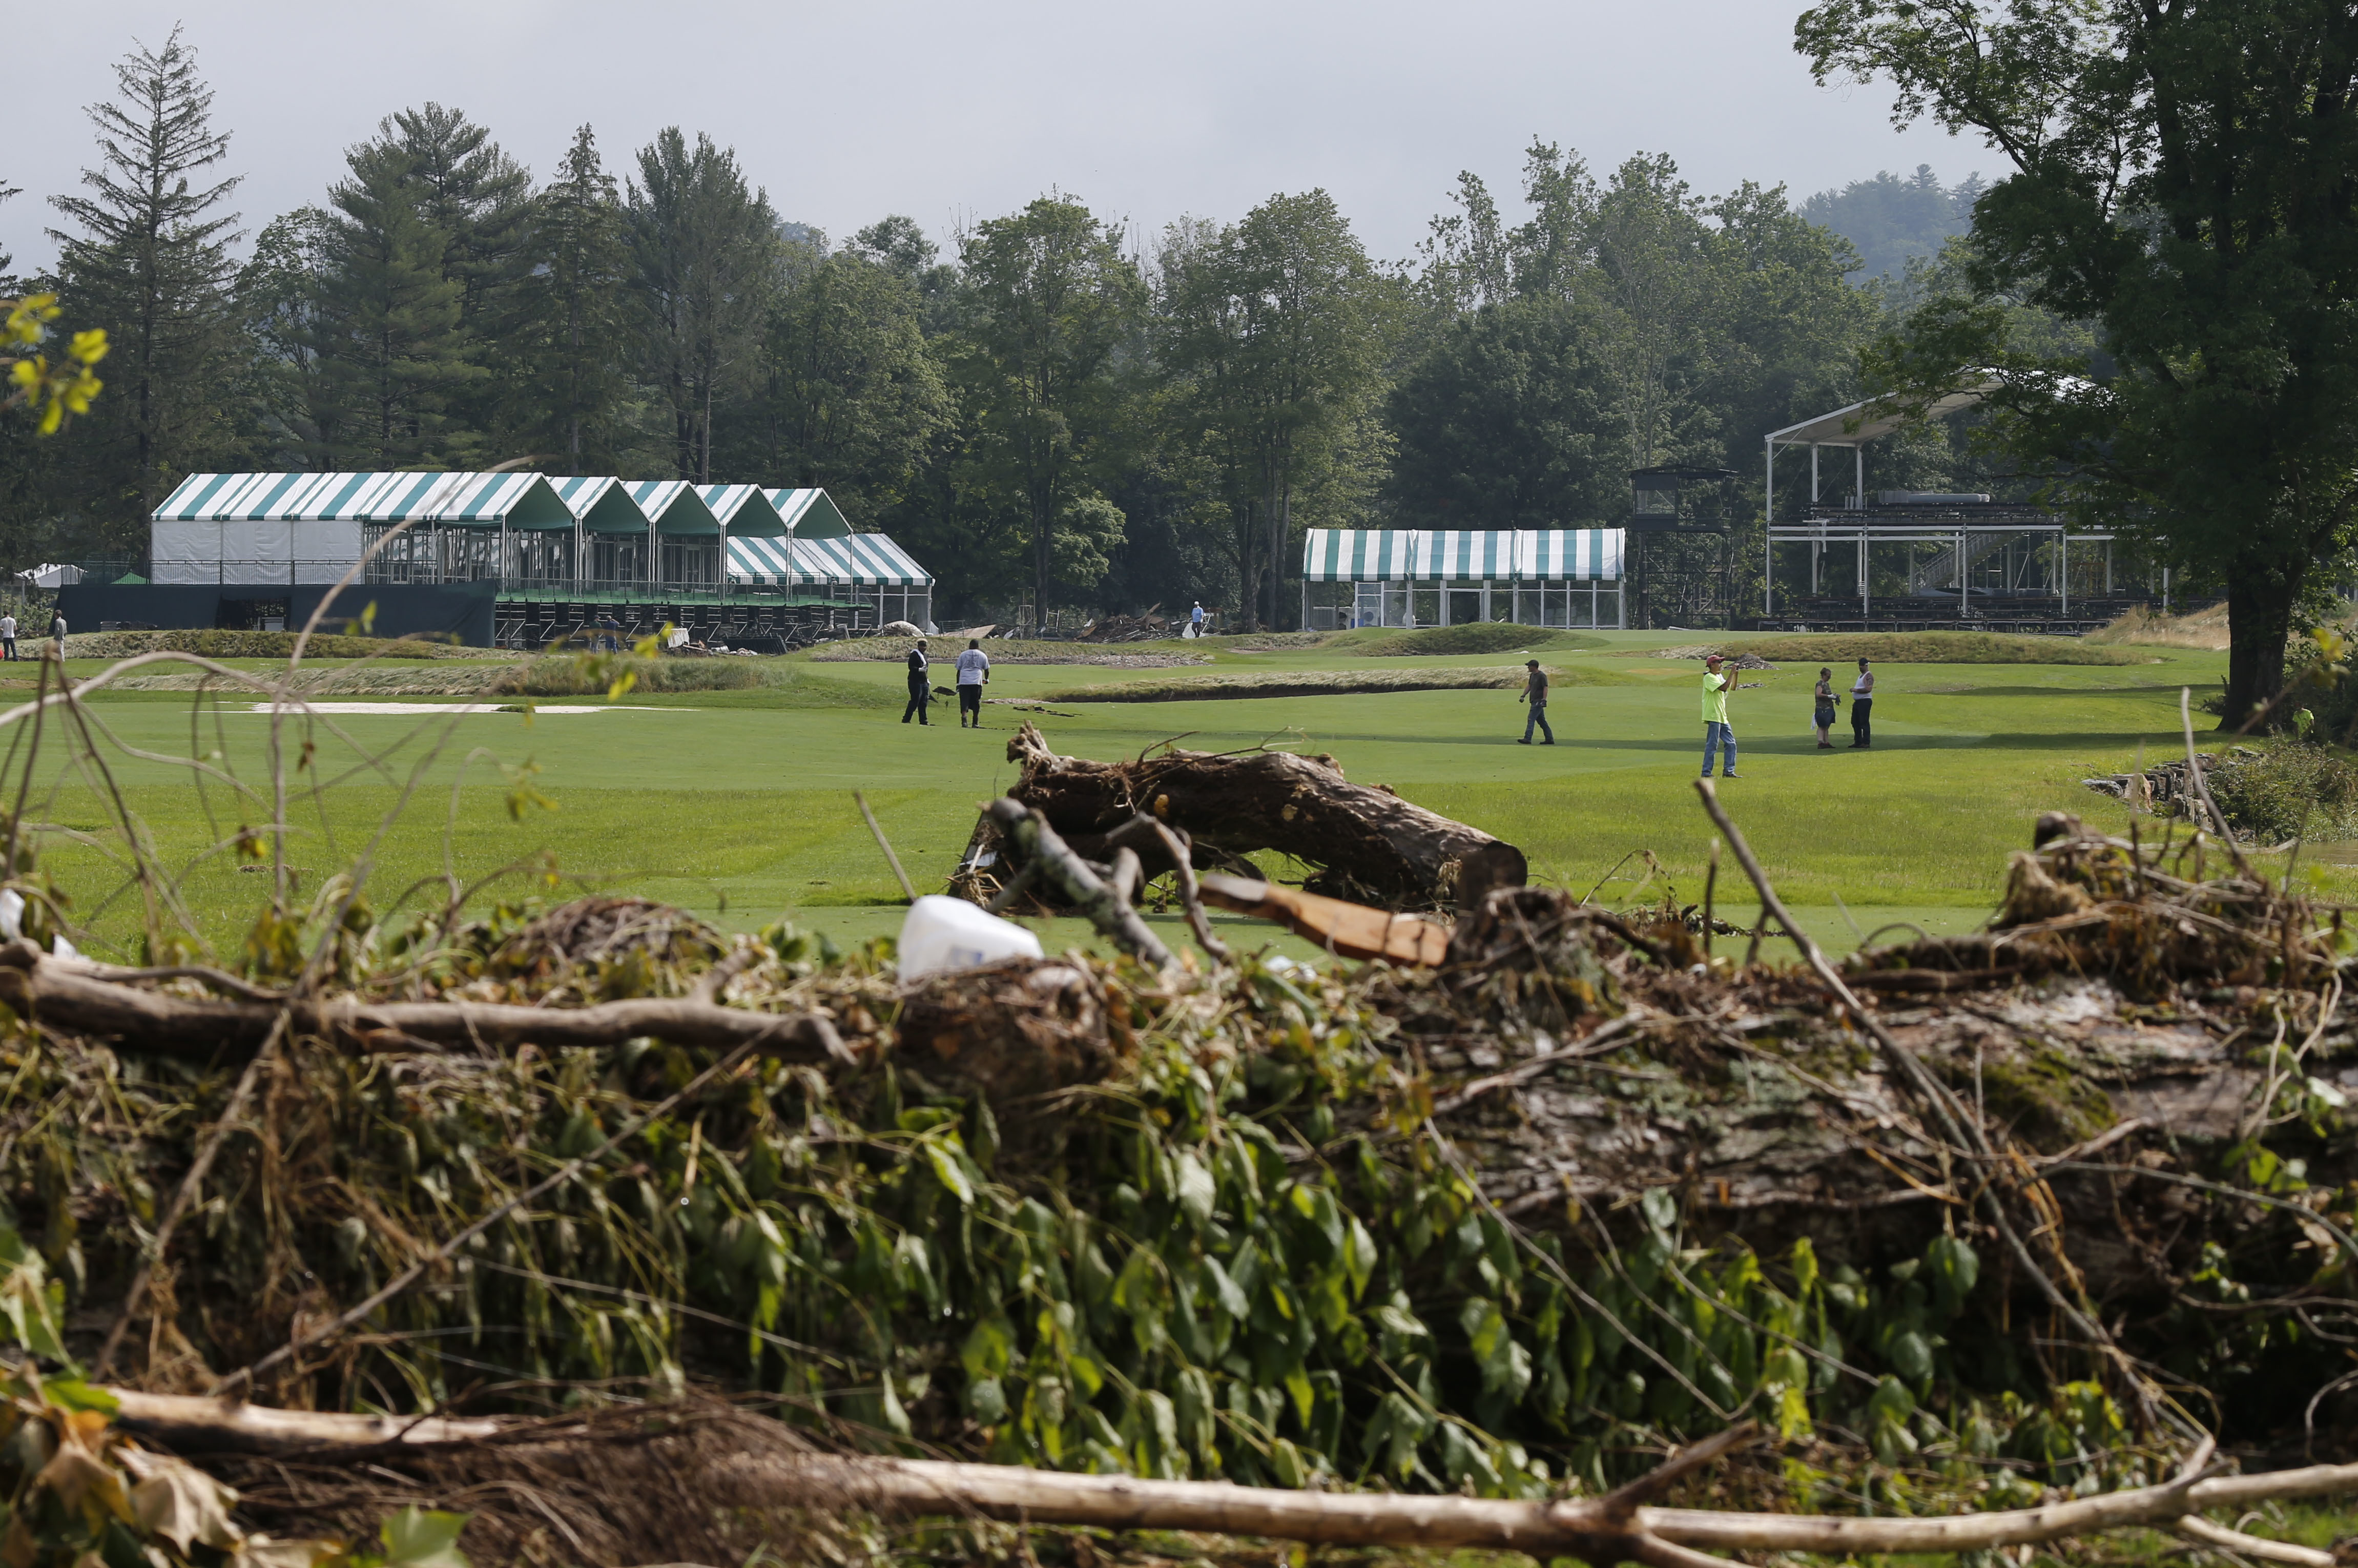 FILE - In this June 28, 2016, file photo, workers survey debris along the 17th fairway of the Old White Course on the property of the Greenbrier Resort in White Sulphur Springs, W. Va. Nearly a year since flooding from torrential rains left 23 people dead